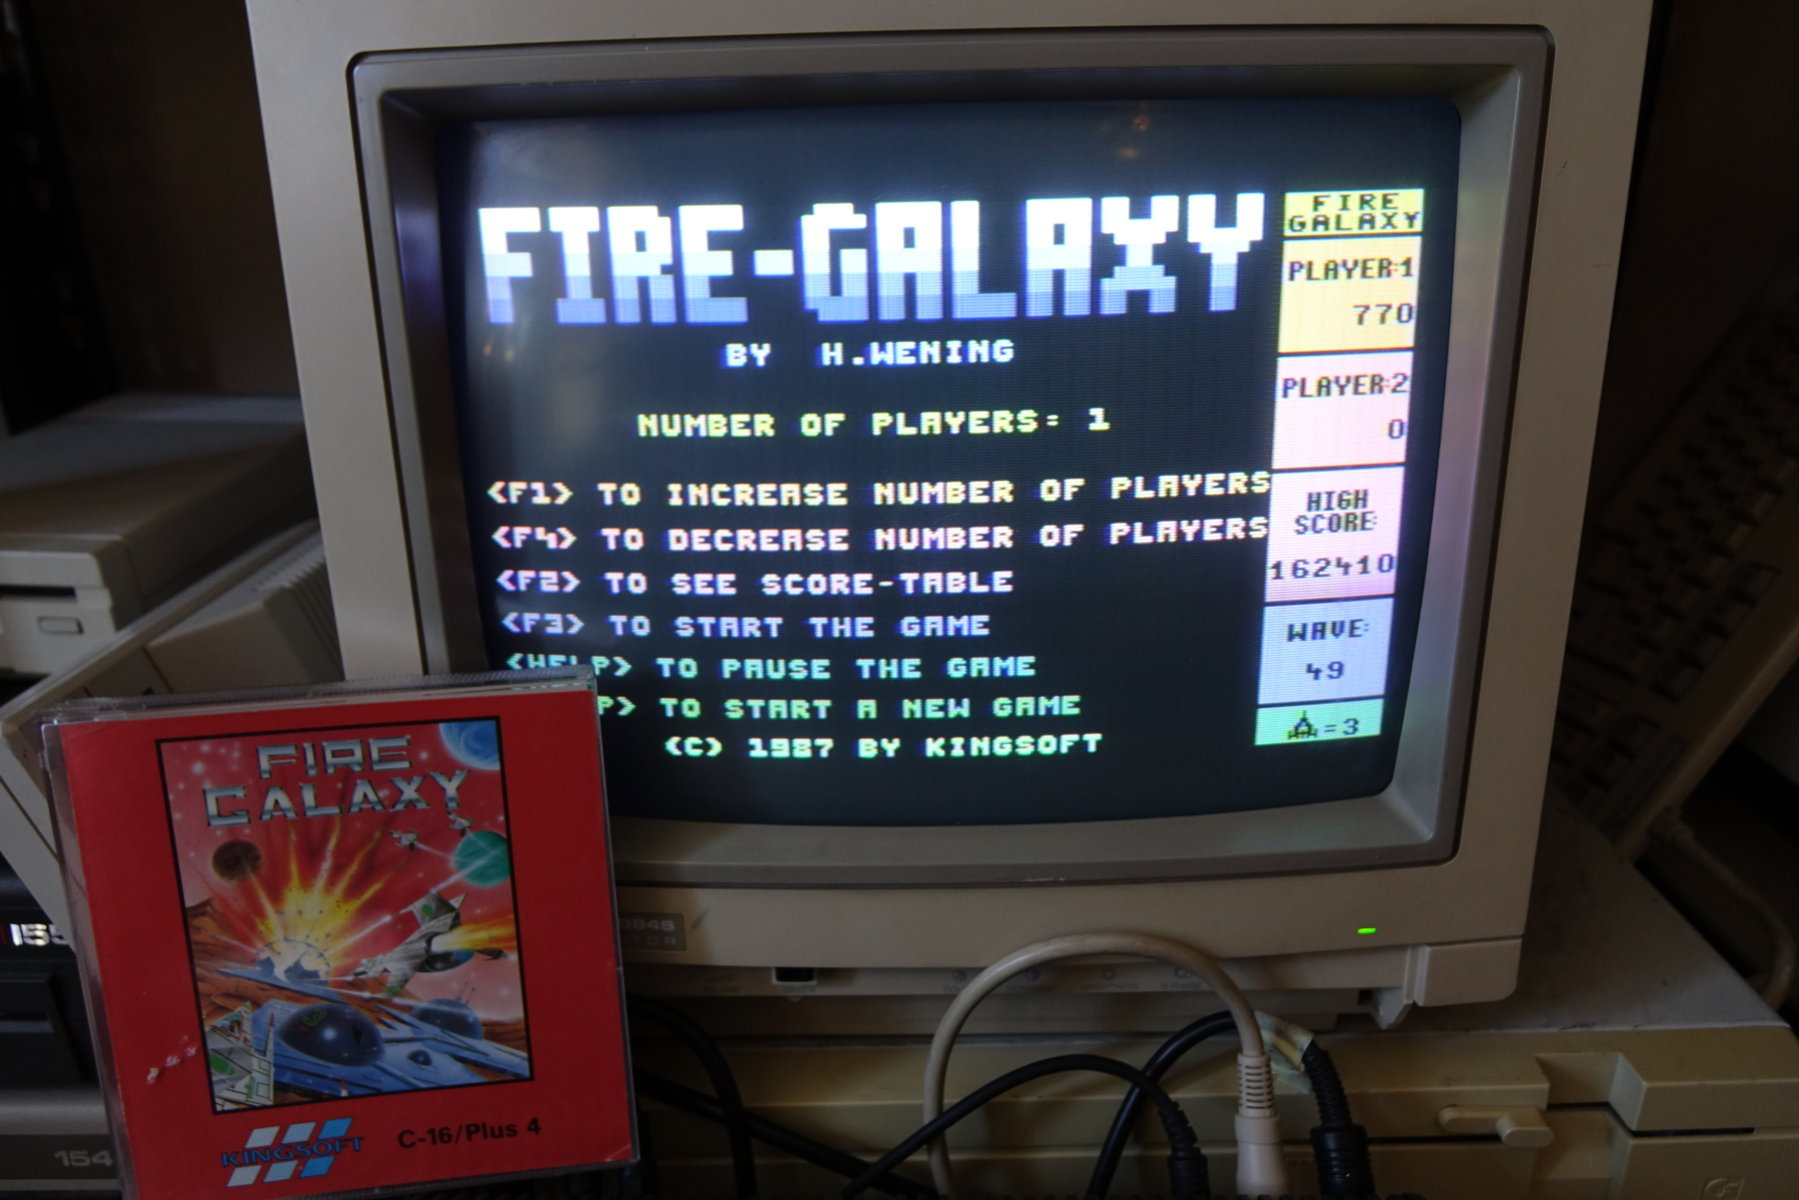 Fire Galaxy [Normal Game] 162,410 points